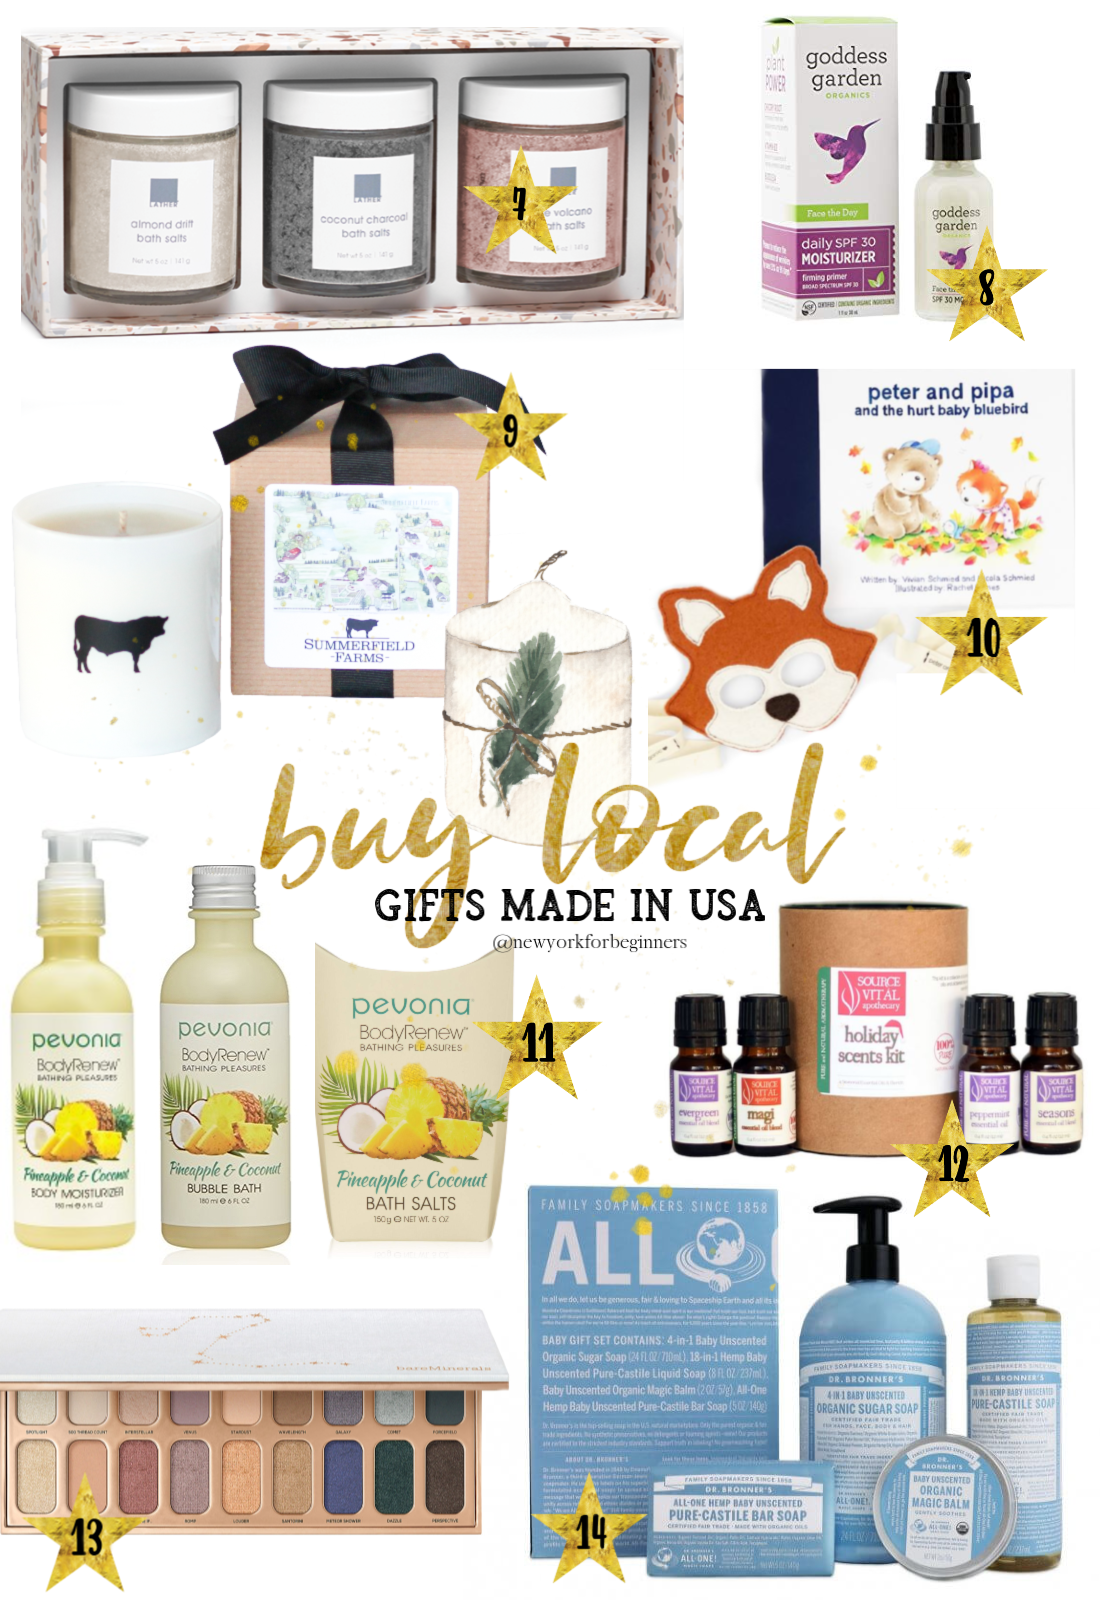 buy local gifts made in usa (2)